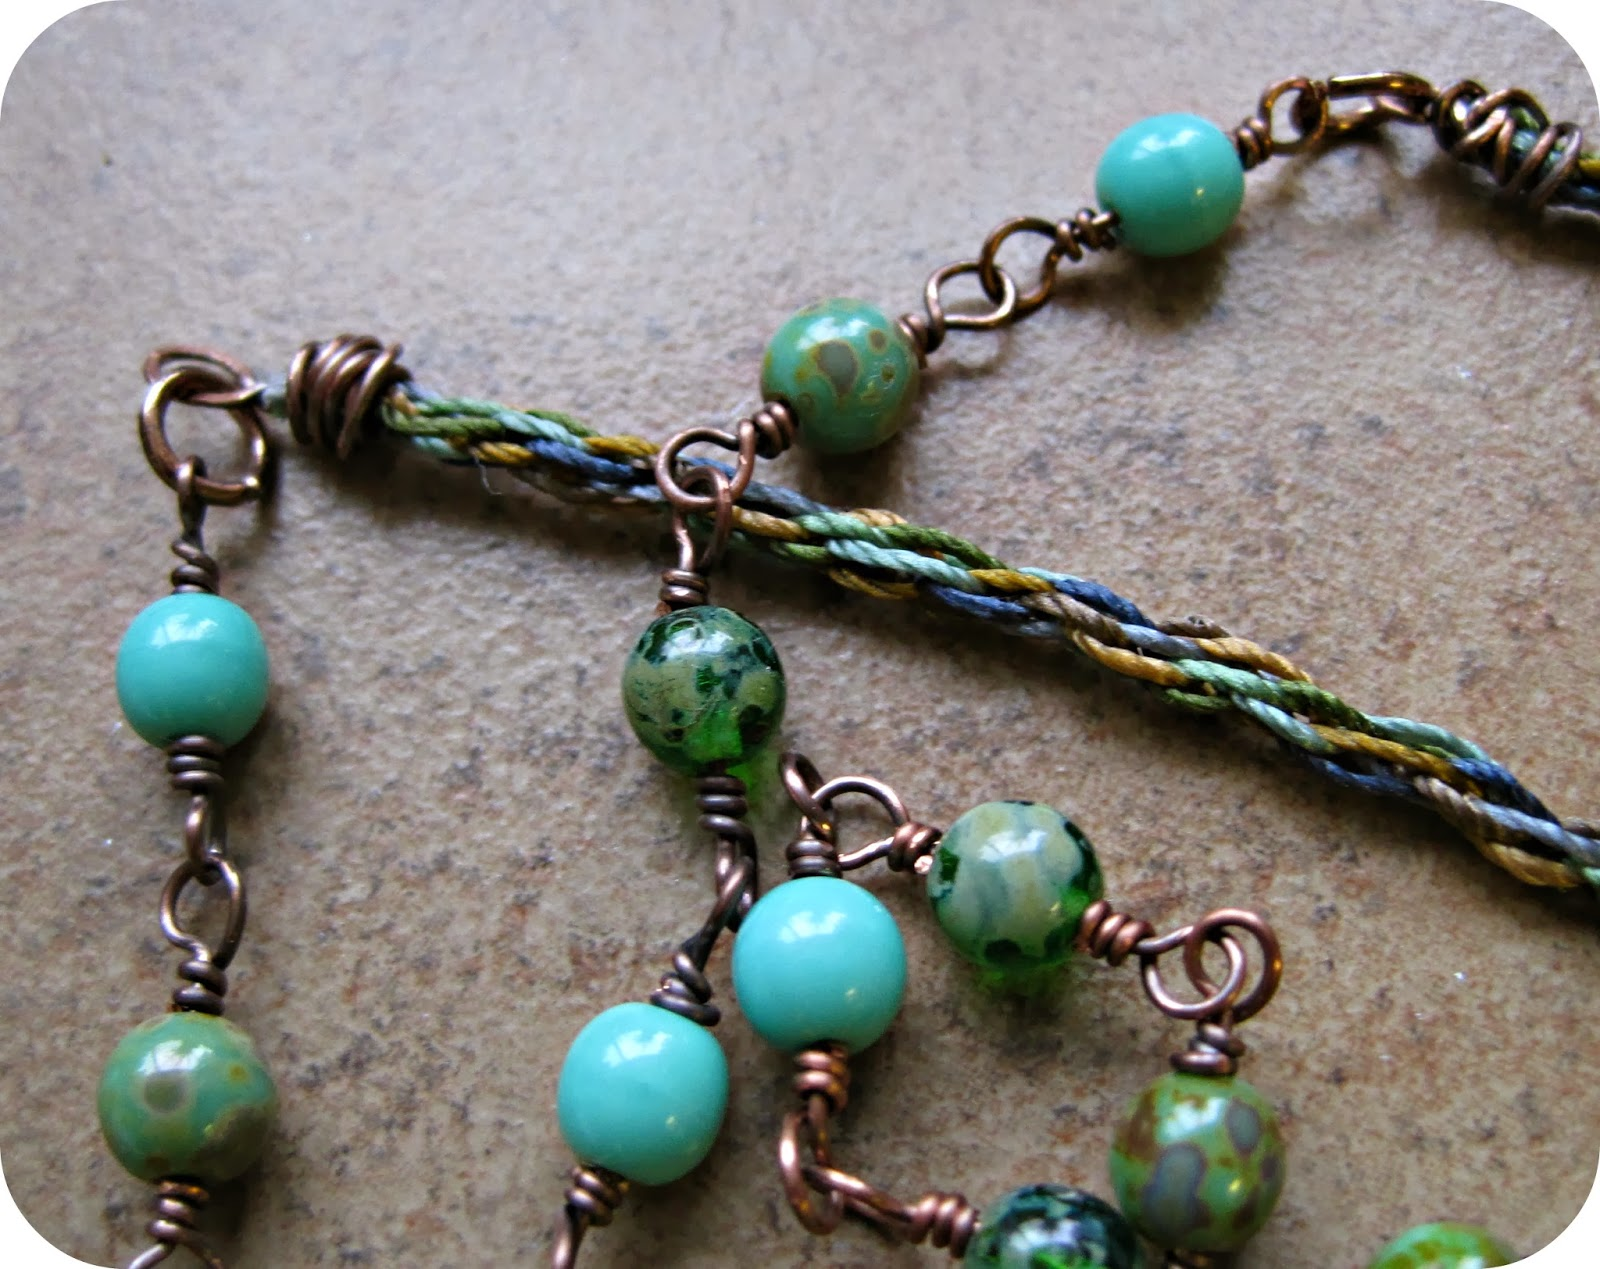 bead make floating company watch a wire youtube necklace potomac